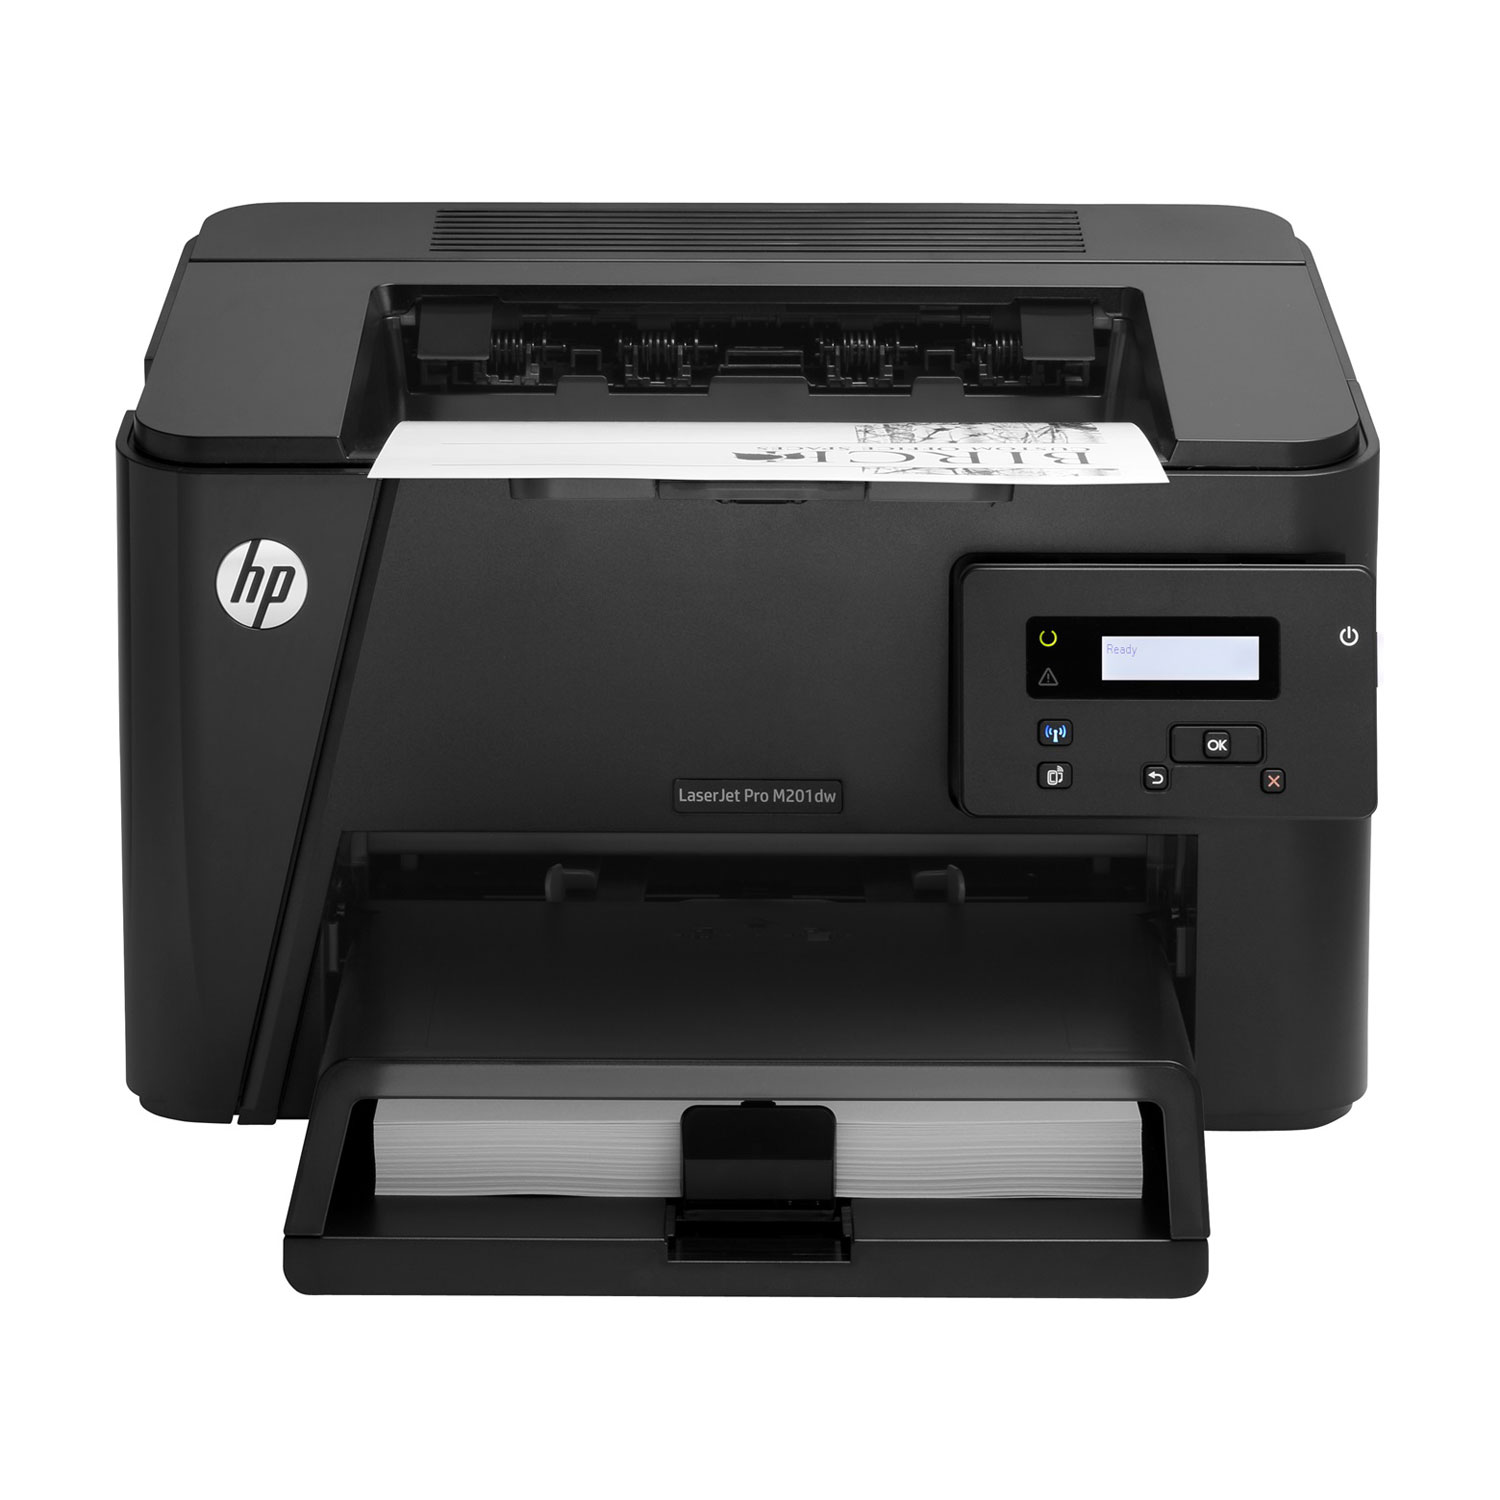 hp laserjet pro 200 m201dw cf456a imprimante laser hp. Black Bedroom Furniture Sets. Home Design Ideas